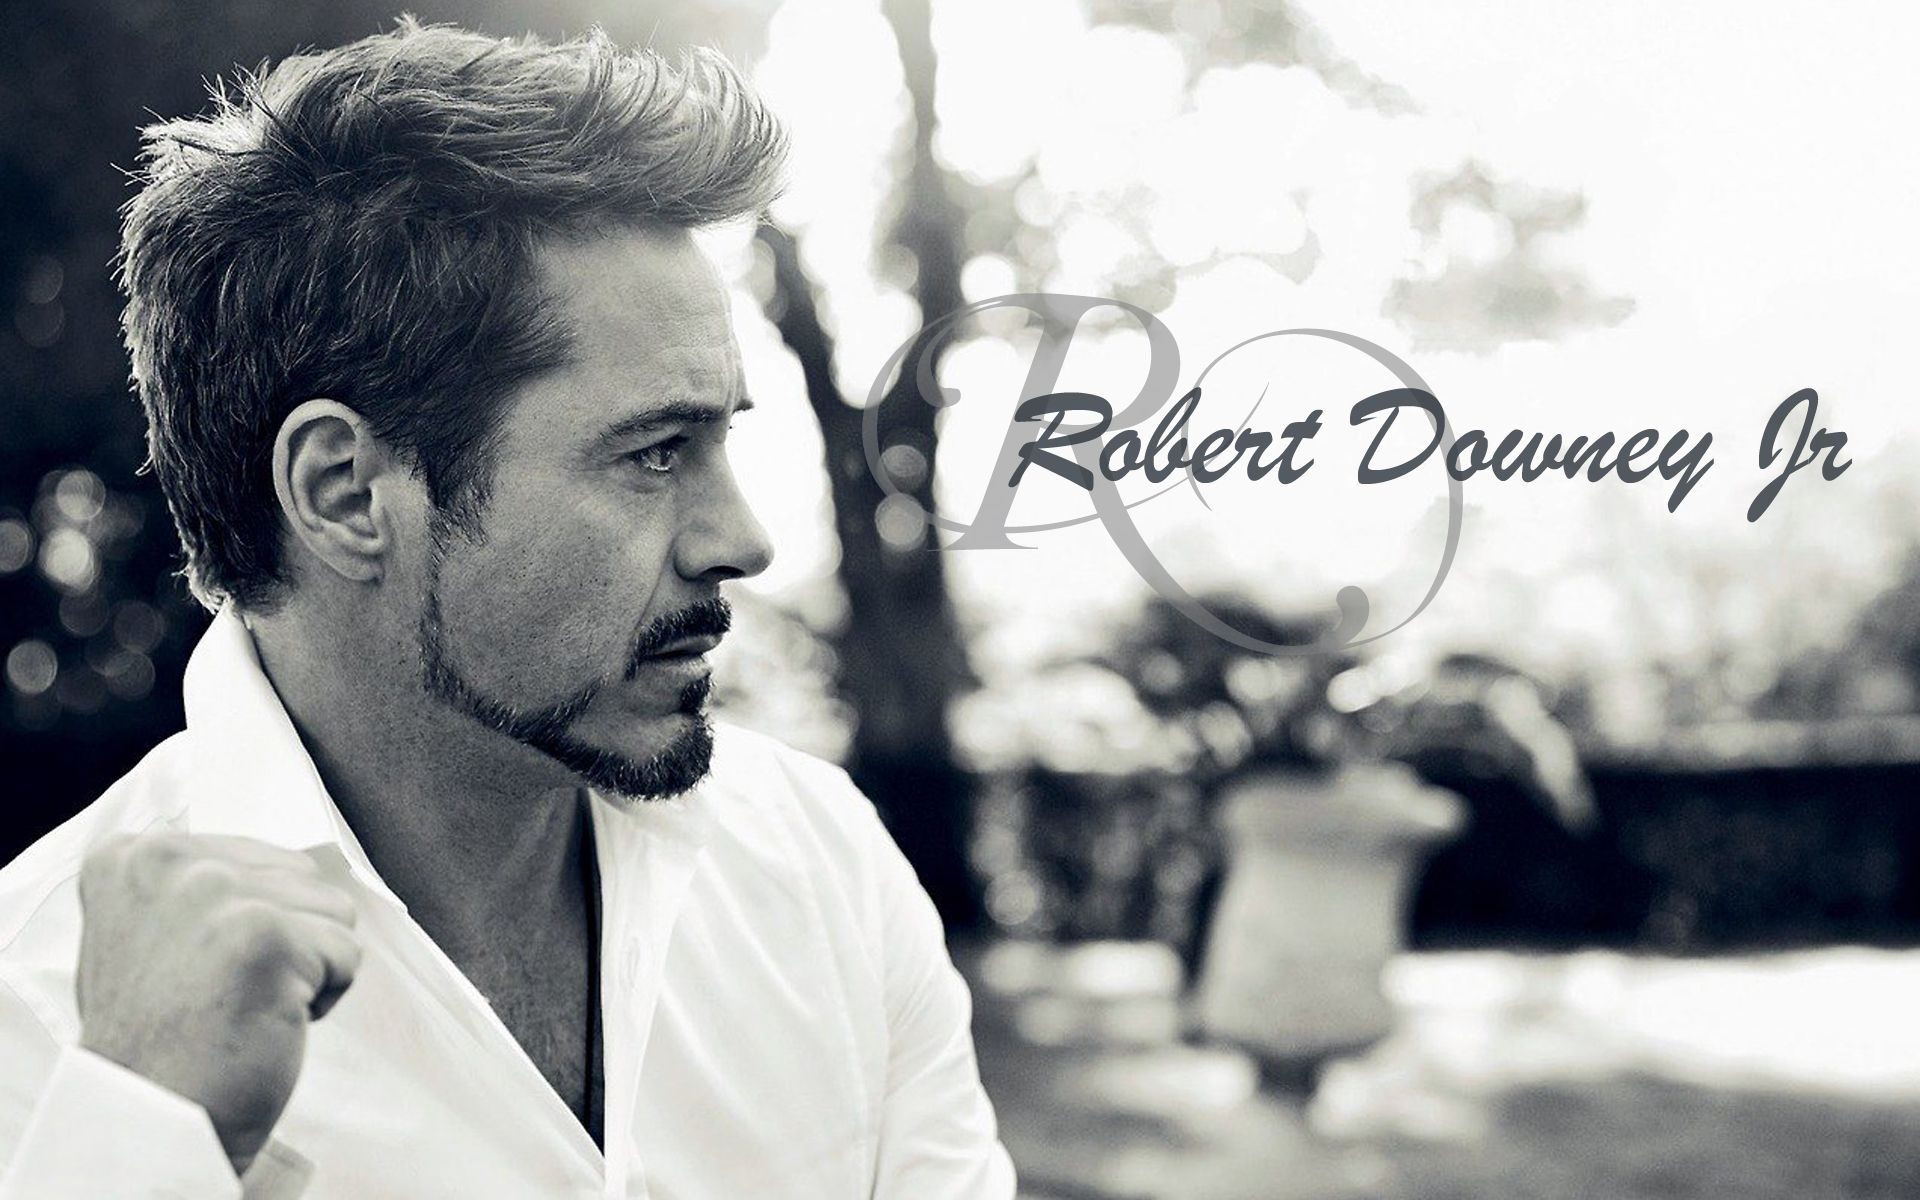 Robert Downey Jr Wallpapers High Resolution And Quality Download